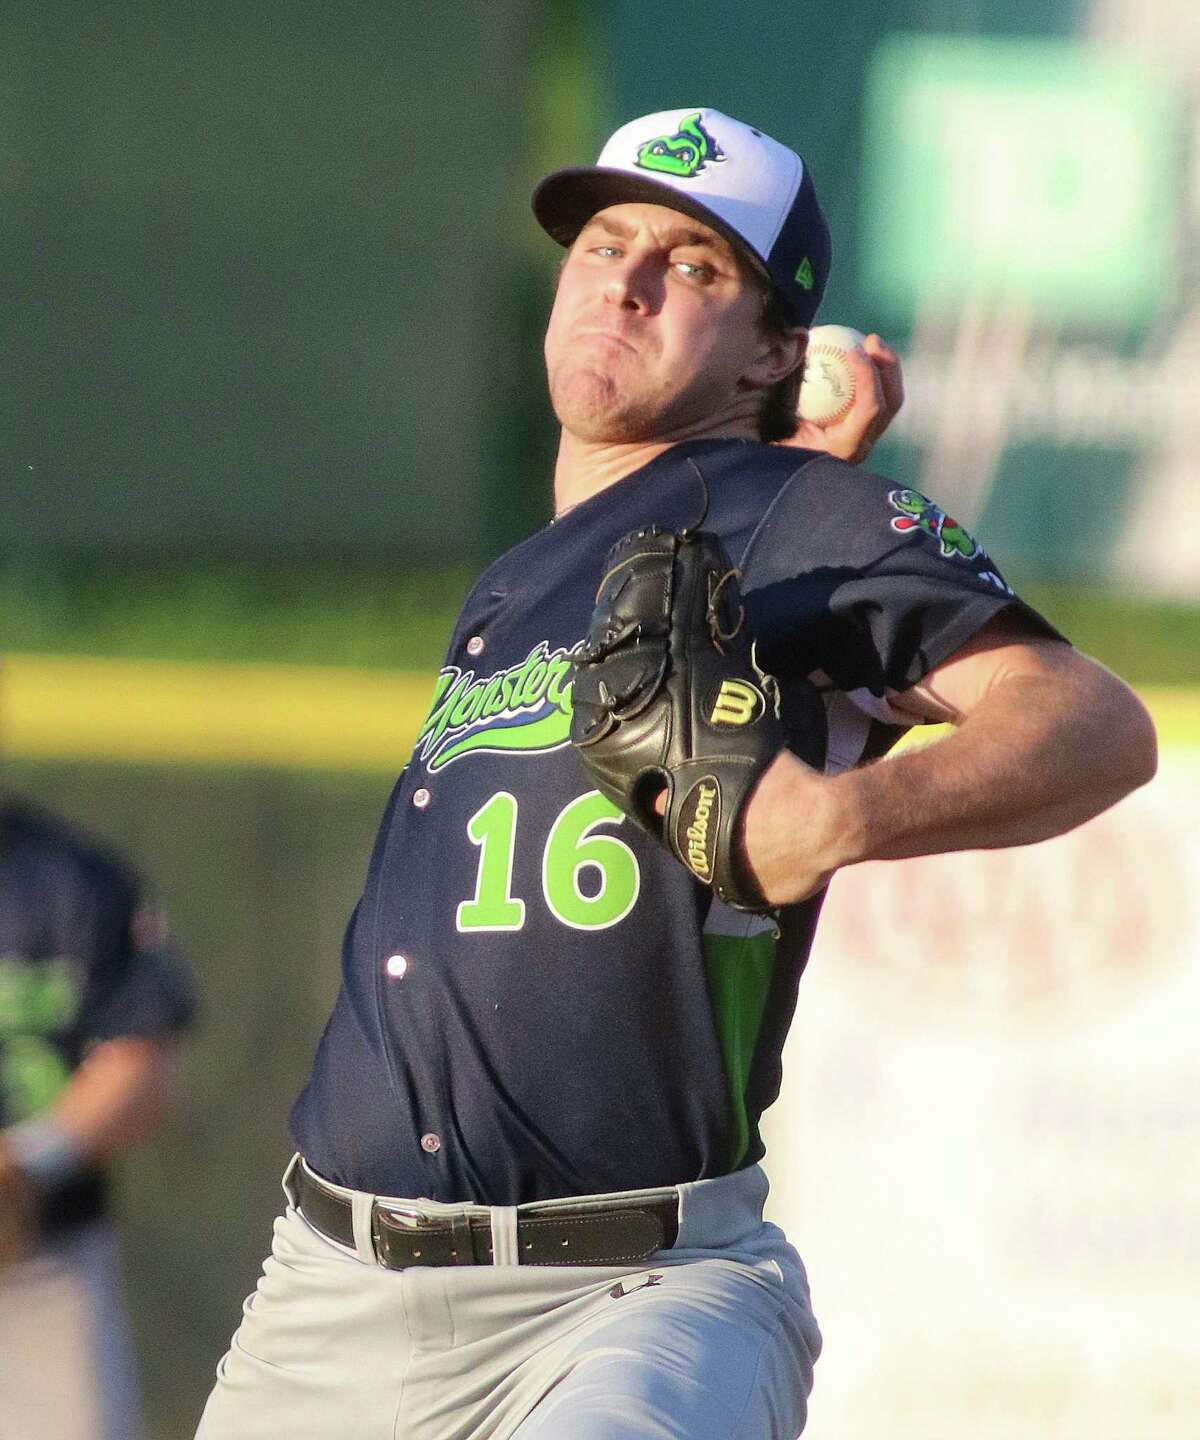 Vermont Lake Monster pitcher Wyatt Marks pitches during during the game versus the Tri-City ValleyCats Monday, July 31, 2017 at Joe Bruno Stadium in Troy. (Ed Burke photo - Special to The Times Union)